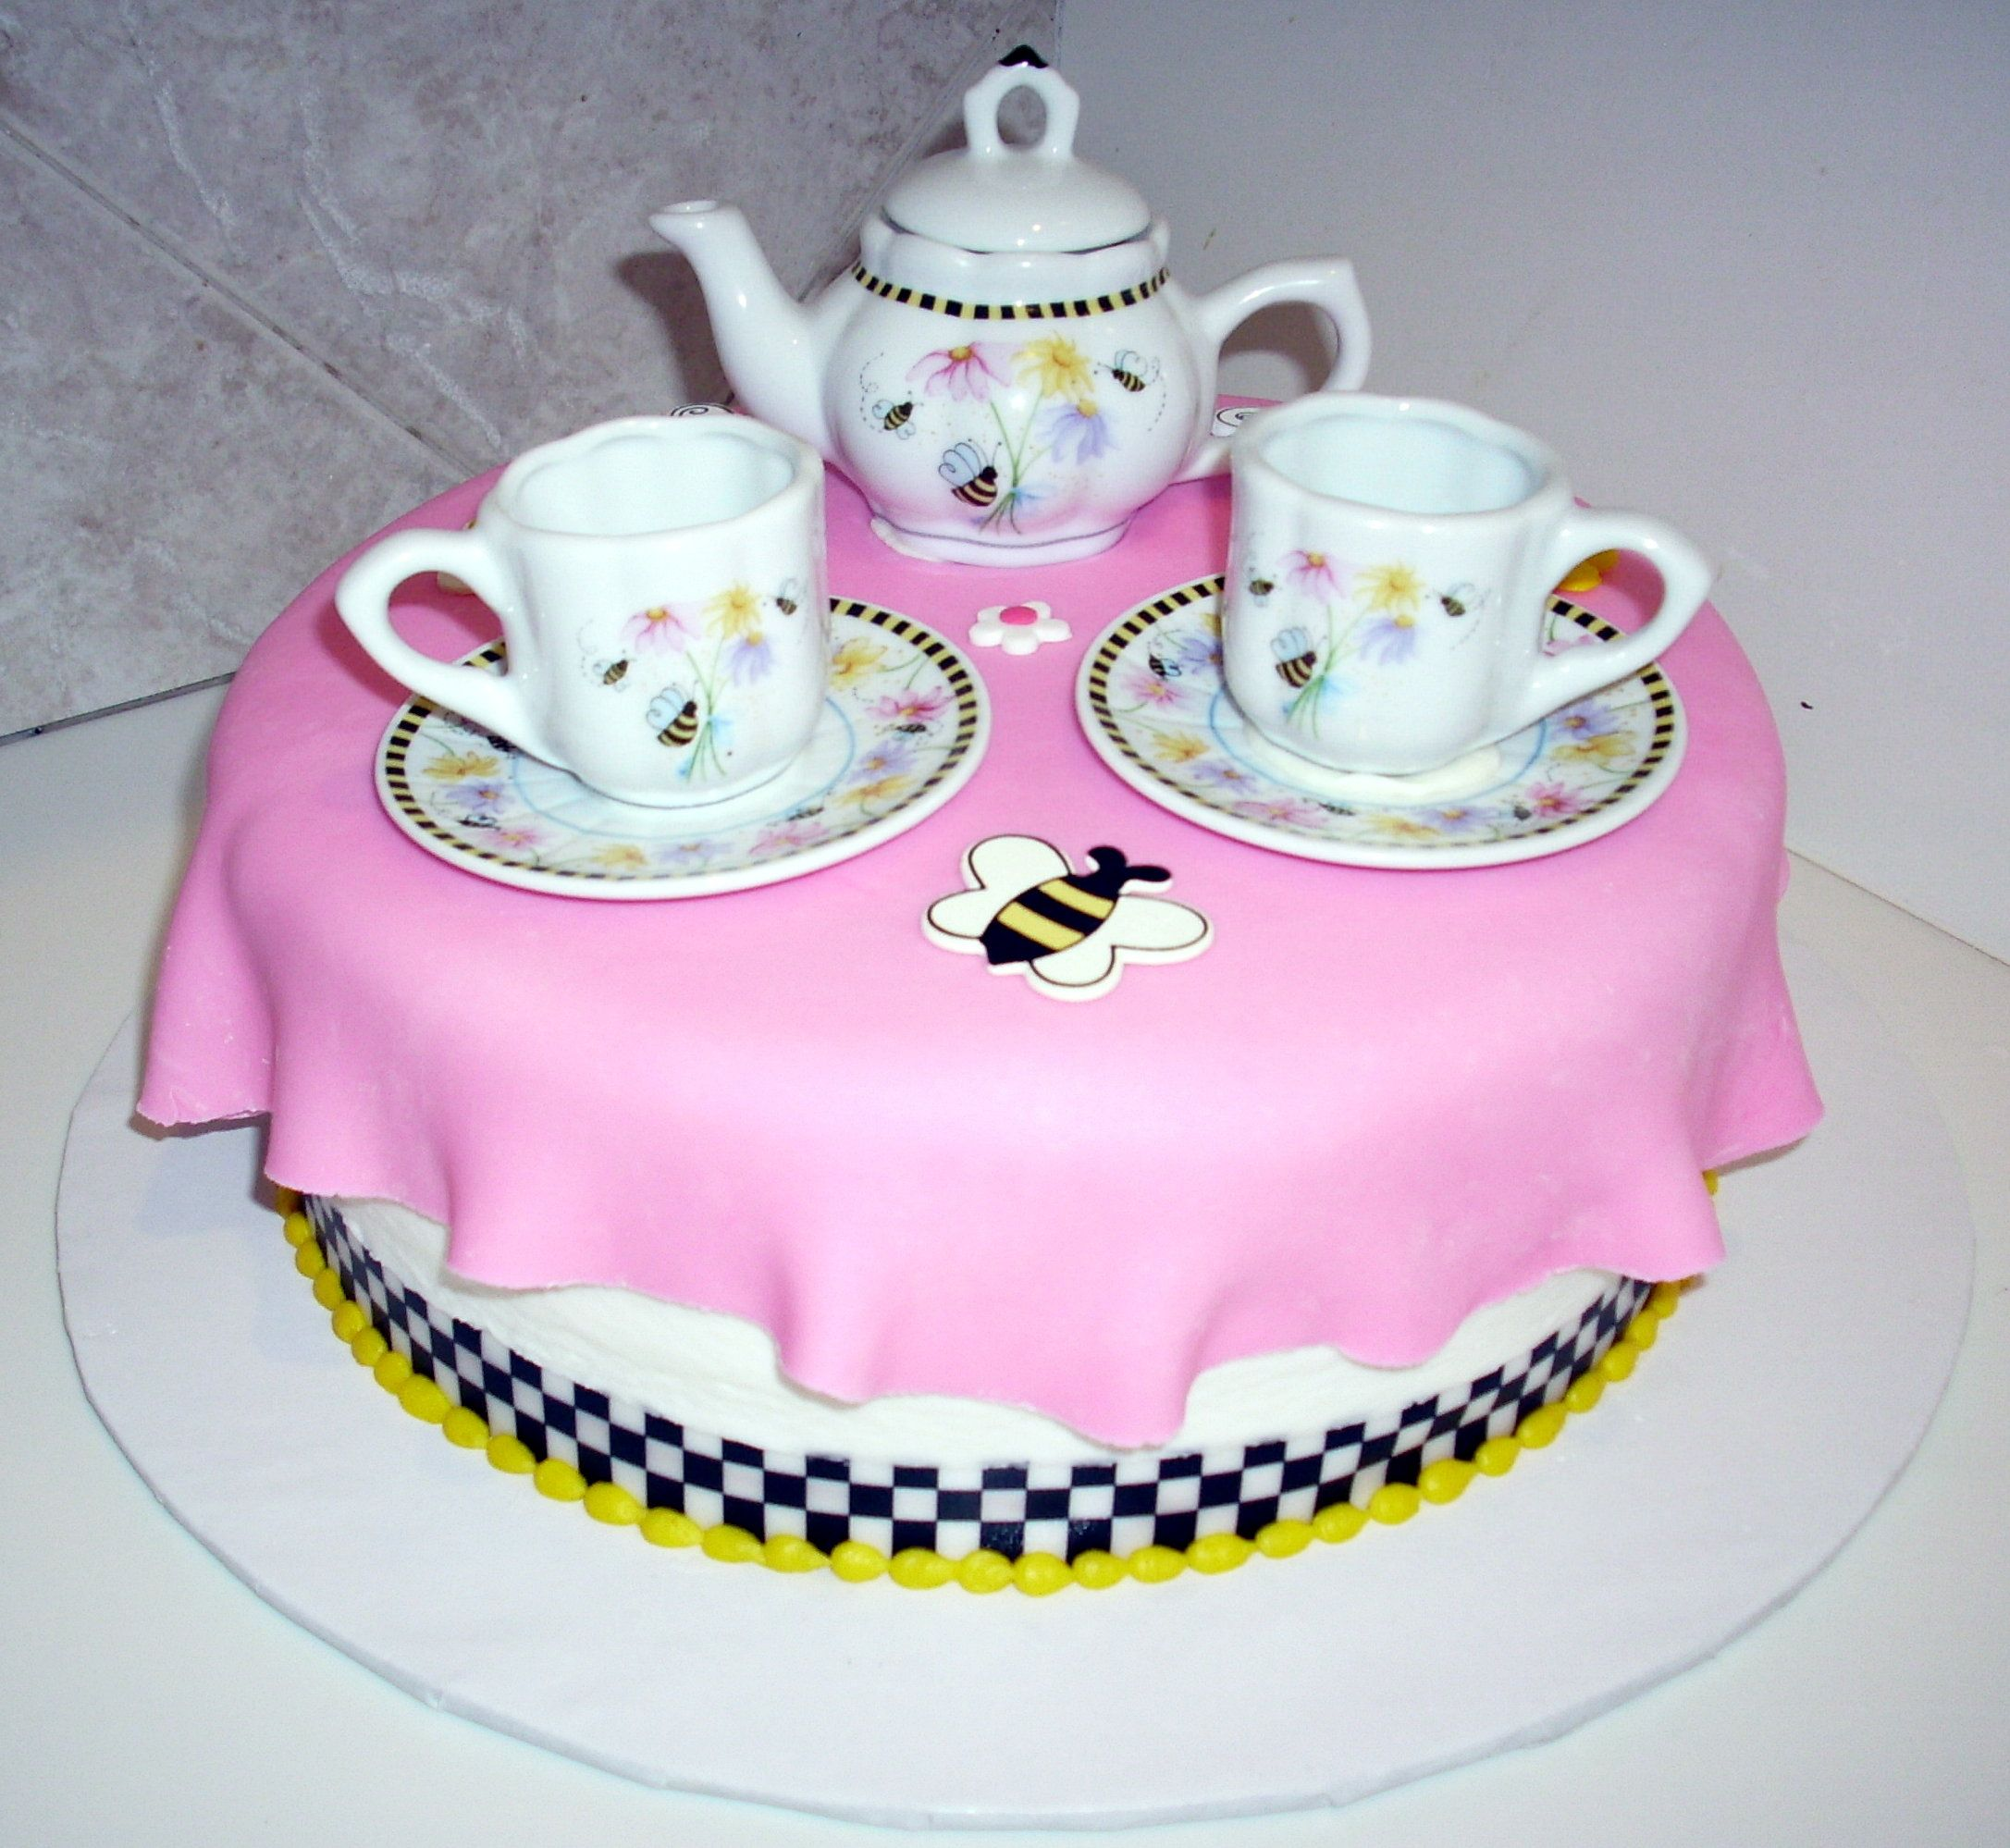 Tea party cake cakes pinterest tea parties teas and afternoon tea tea party cake baby shower filmwisefo Choice Image